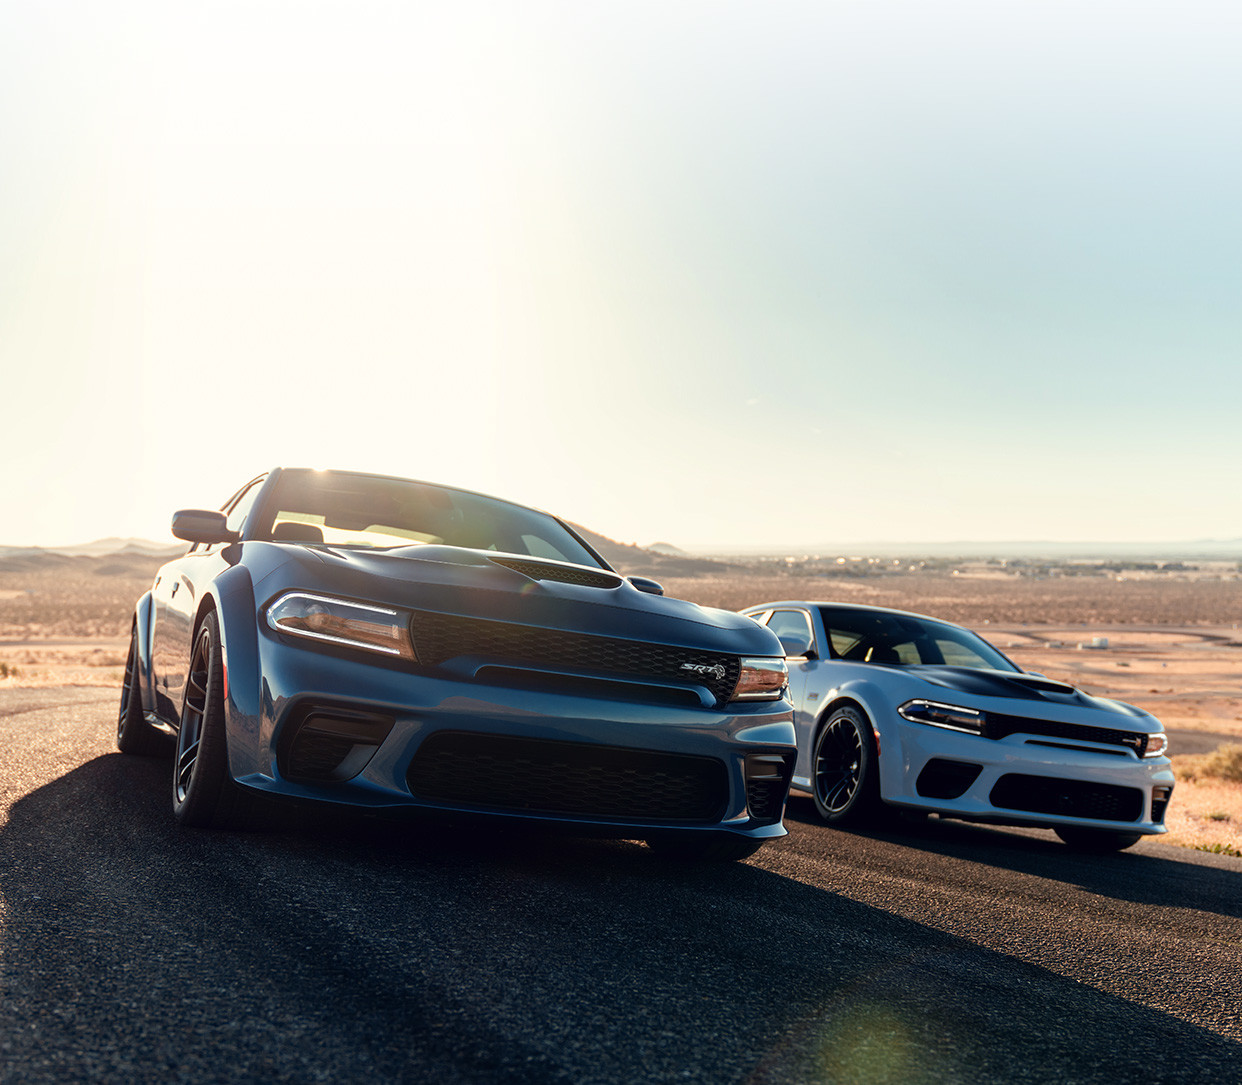 The blue 2020 Dodge Charger being driven on a road in a desert beside the white 2020 Dodge Charger